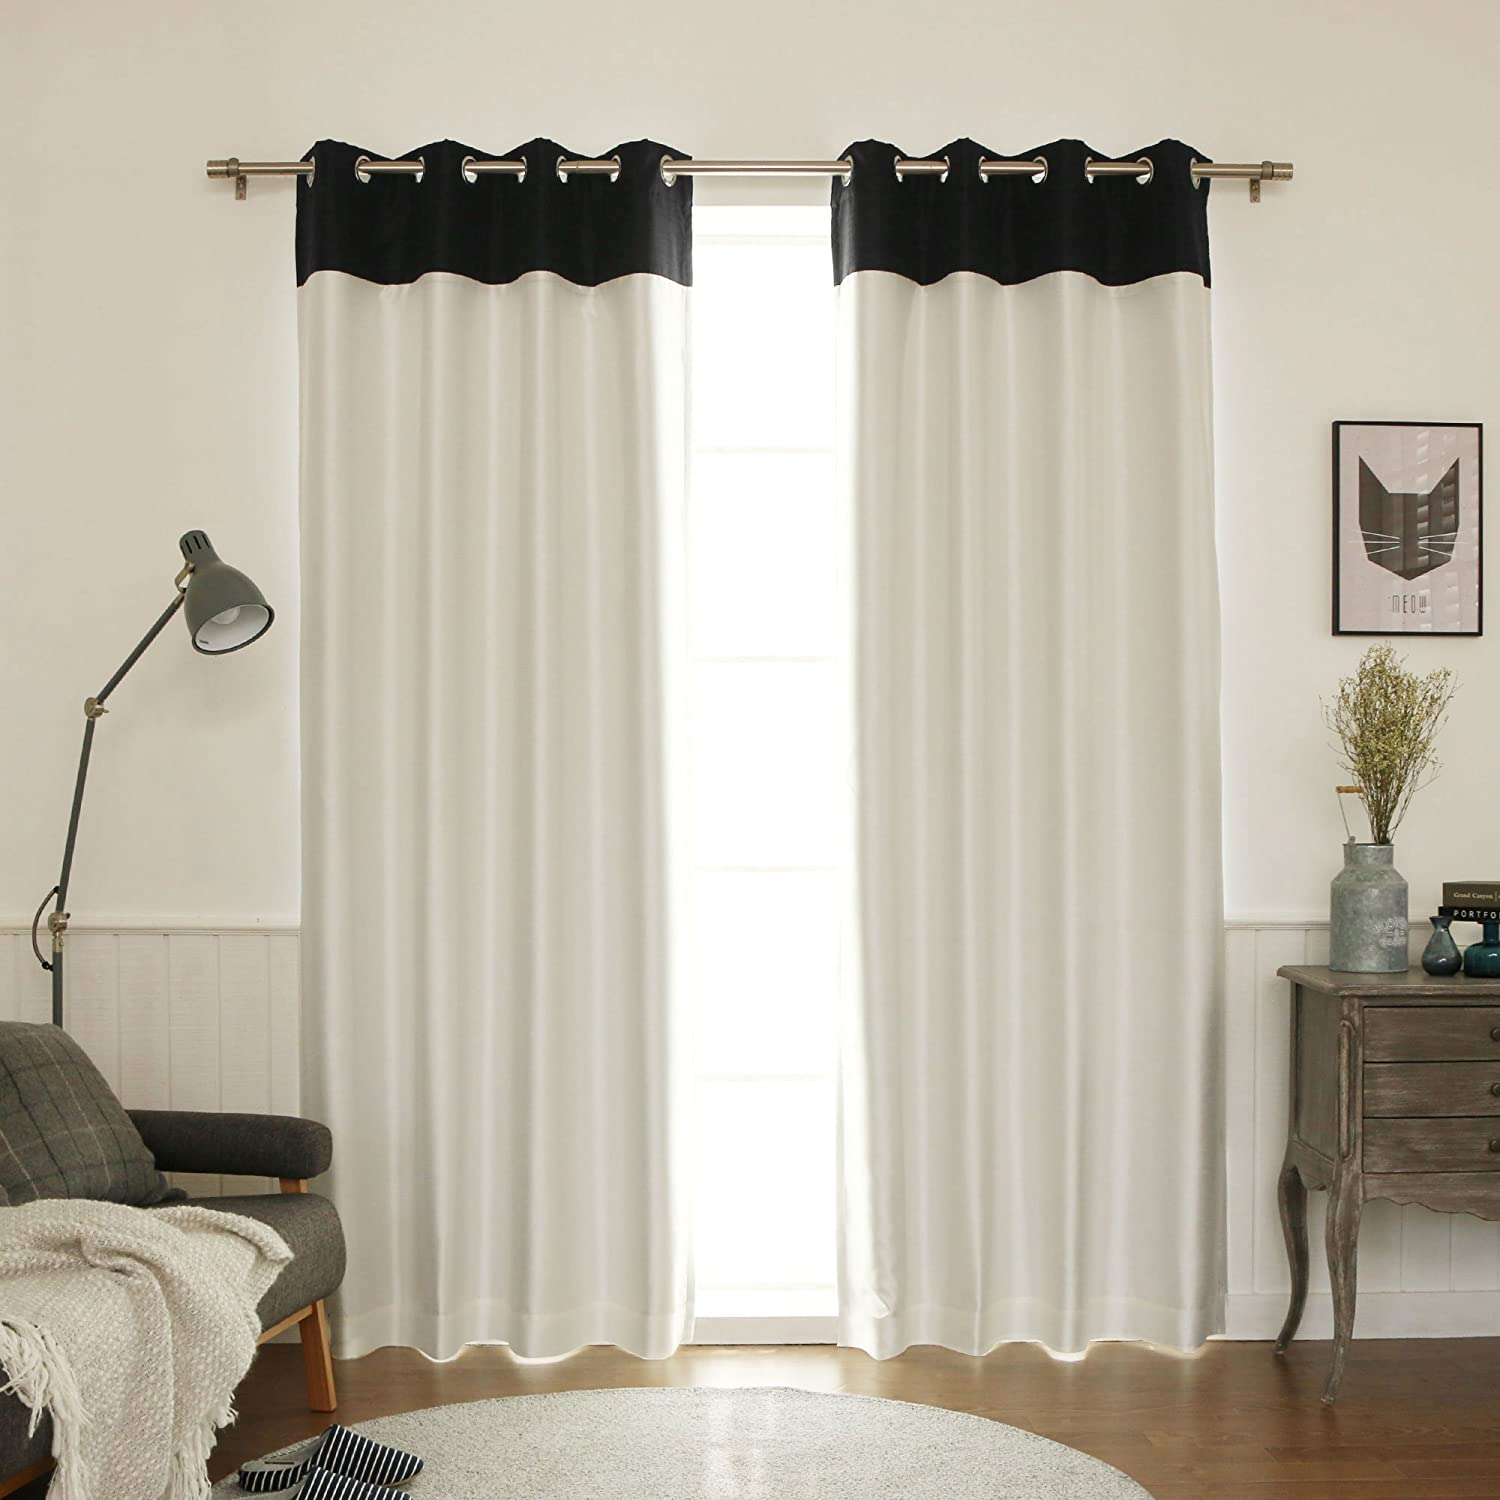 """Best Home Fashion Topborder Faux Silk Blackout Curtain - Stainless Steel Nickel Grommet Top - Black/Ivory - 52""""W X 84""""L - (1 Panel)"""